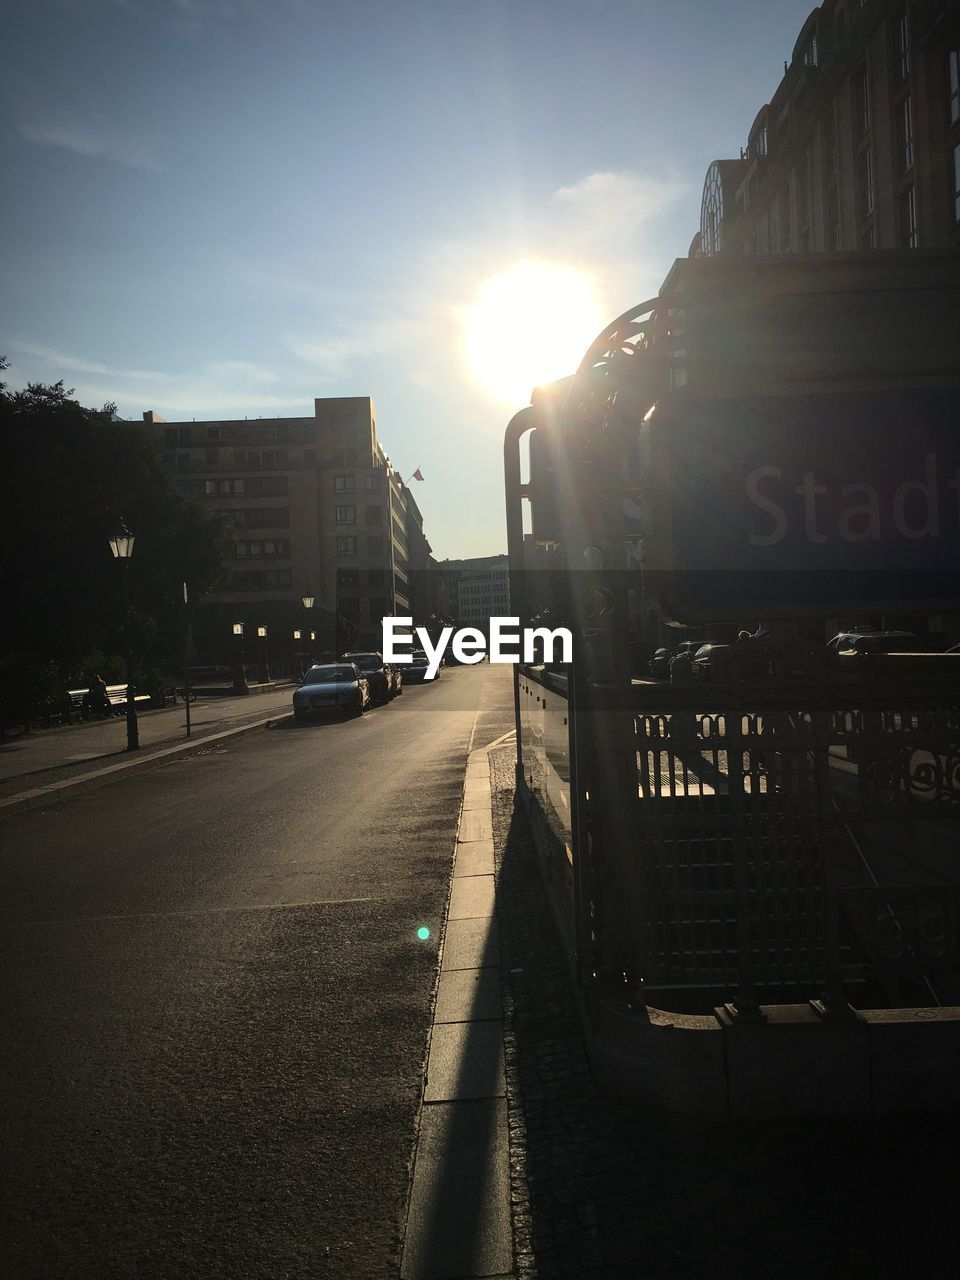 sky, transportation, sunlight, architecture, lens flare, city, sun, mode of transportation, nature, motor vehicle, car, building exterior, sunbeam, road, built structure, sunset, street, sign, land vehicle, text, no people, outdoors, bright